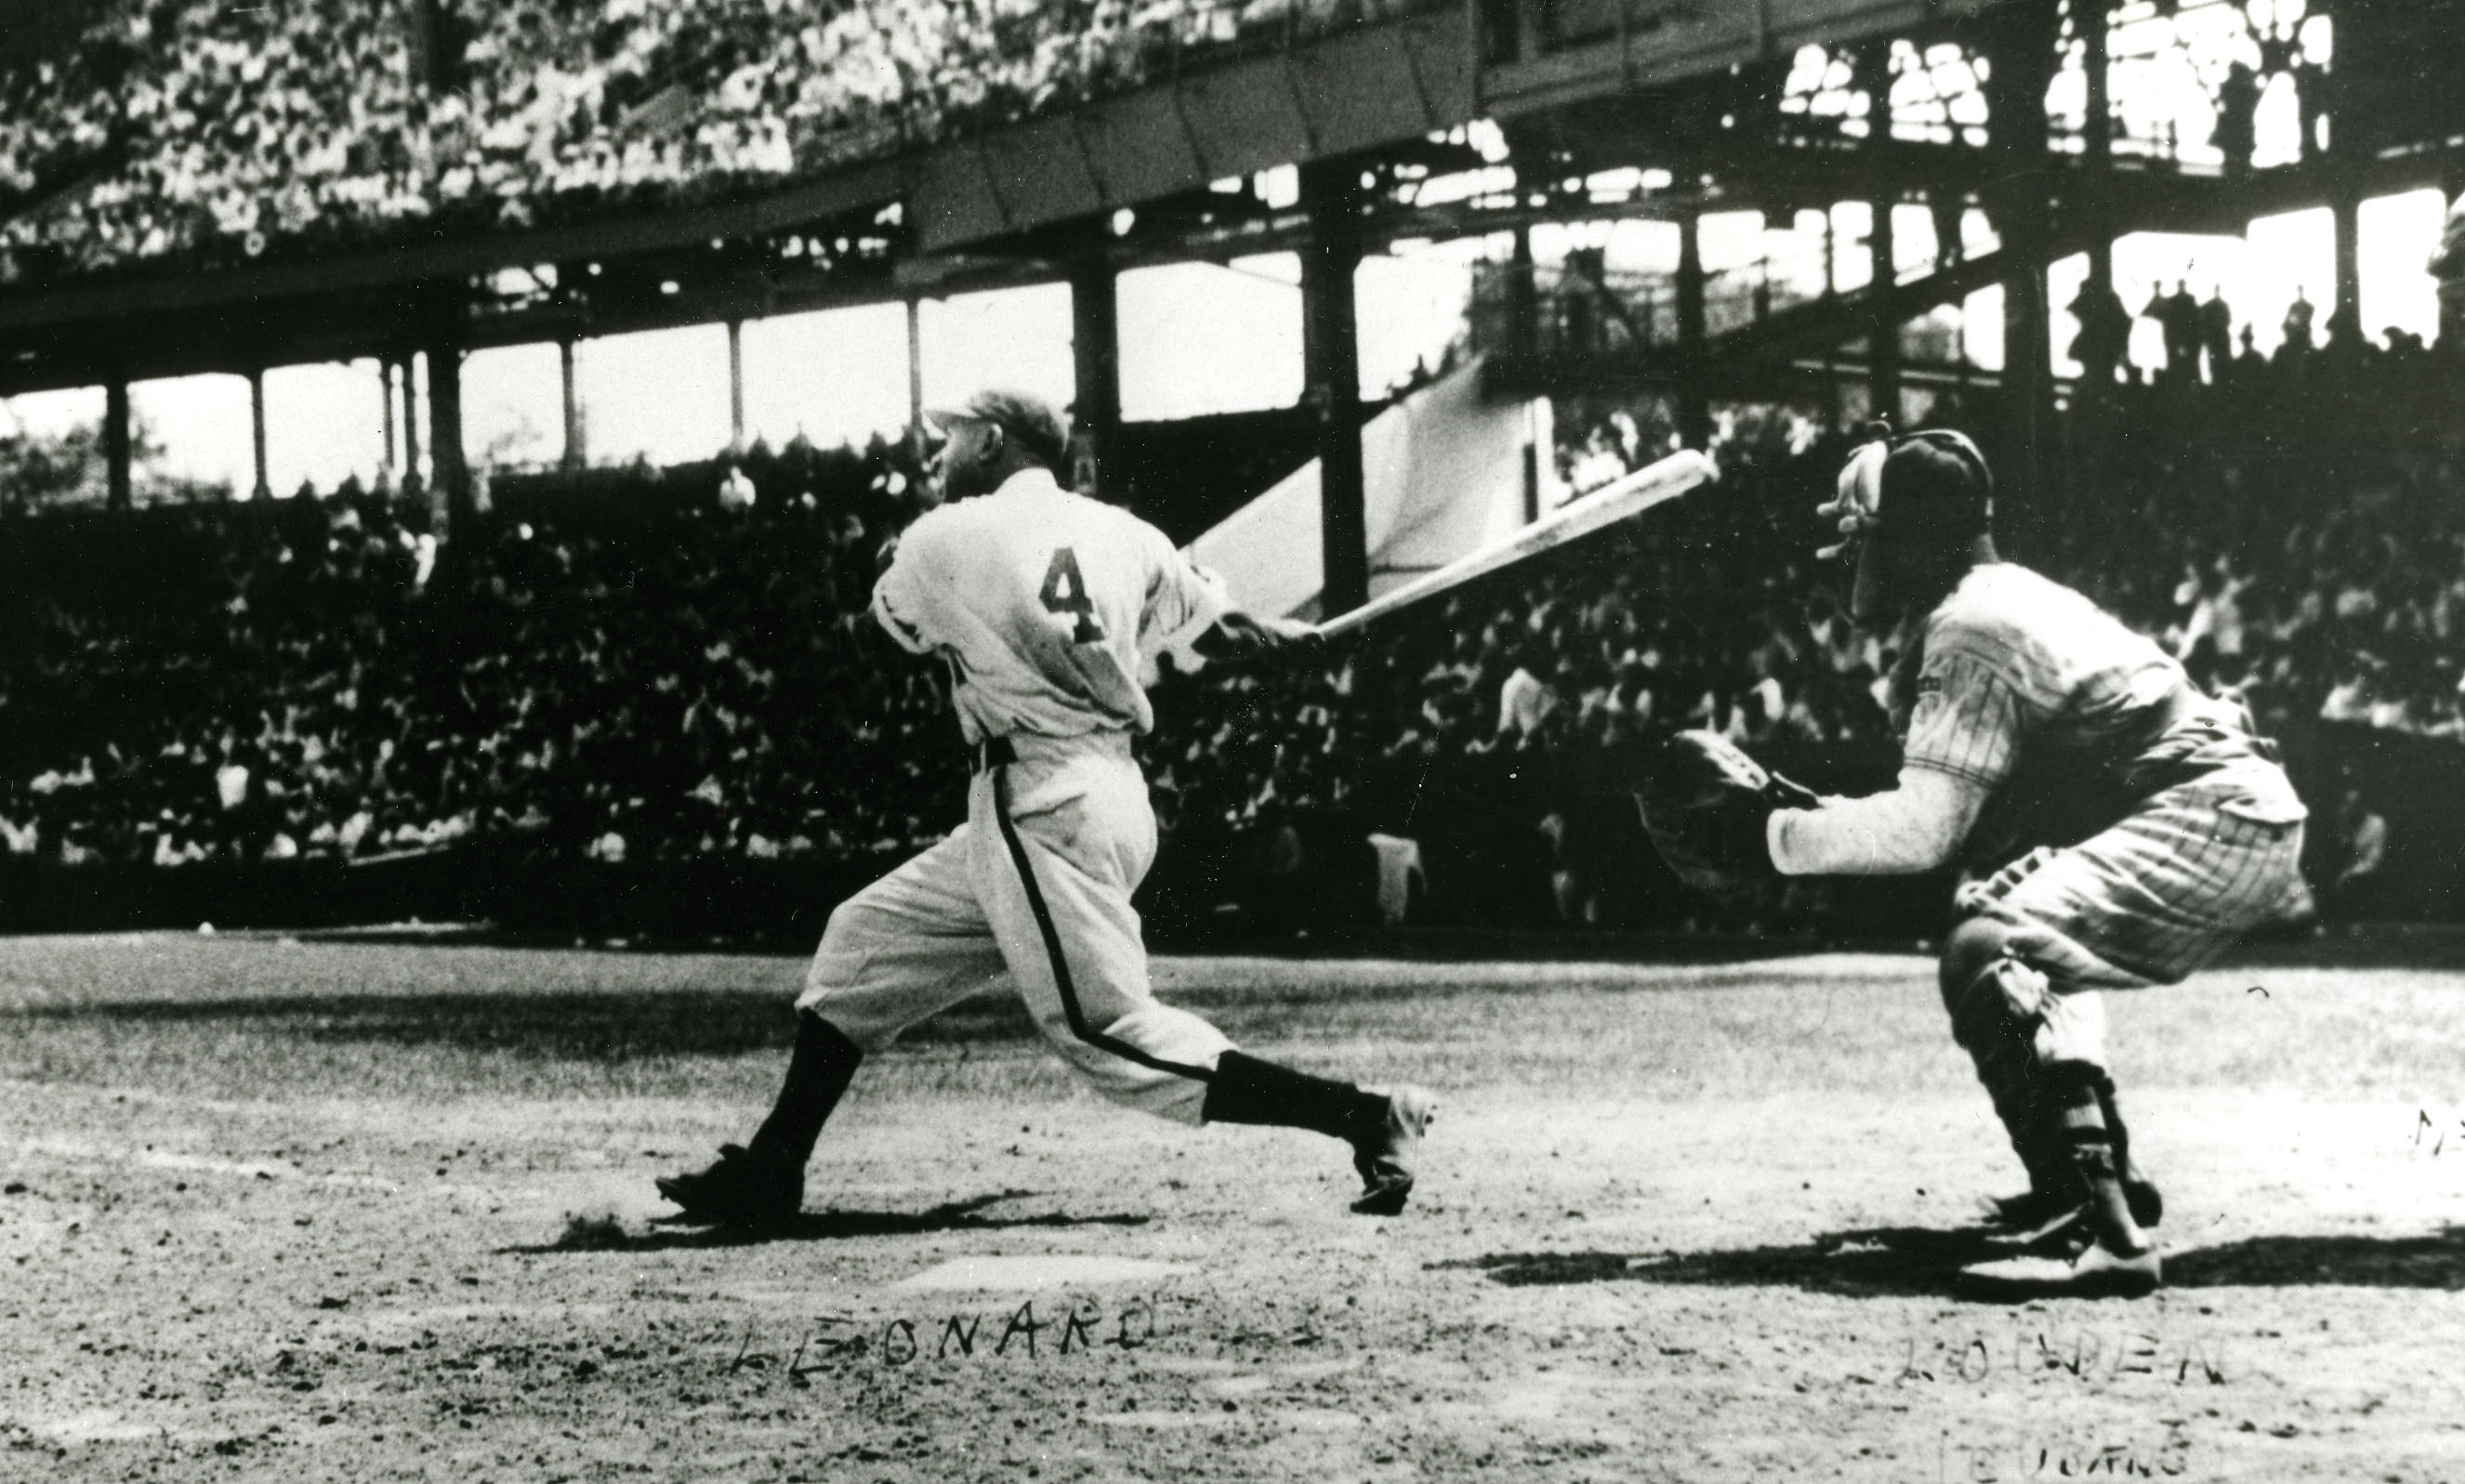 THE BIG PICTURE | The Negro Leagues